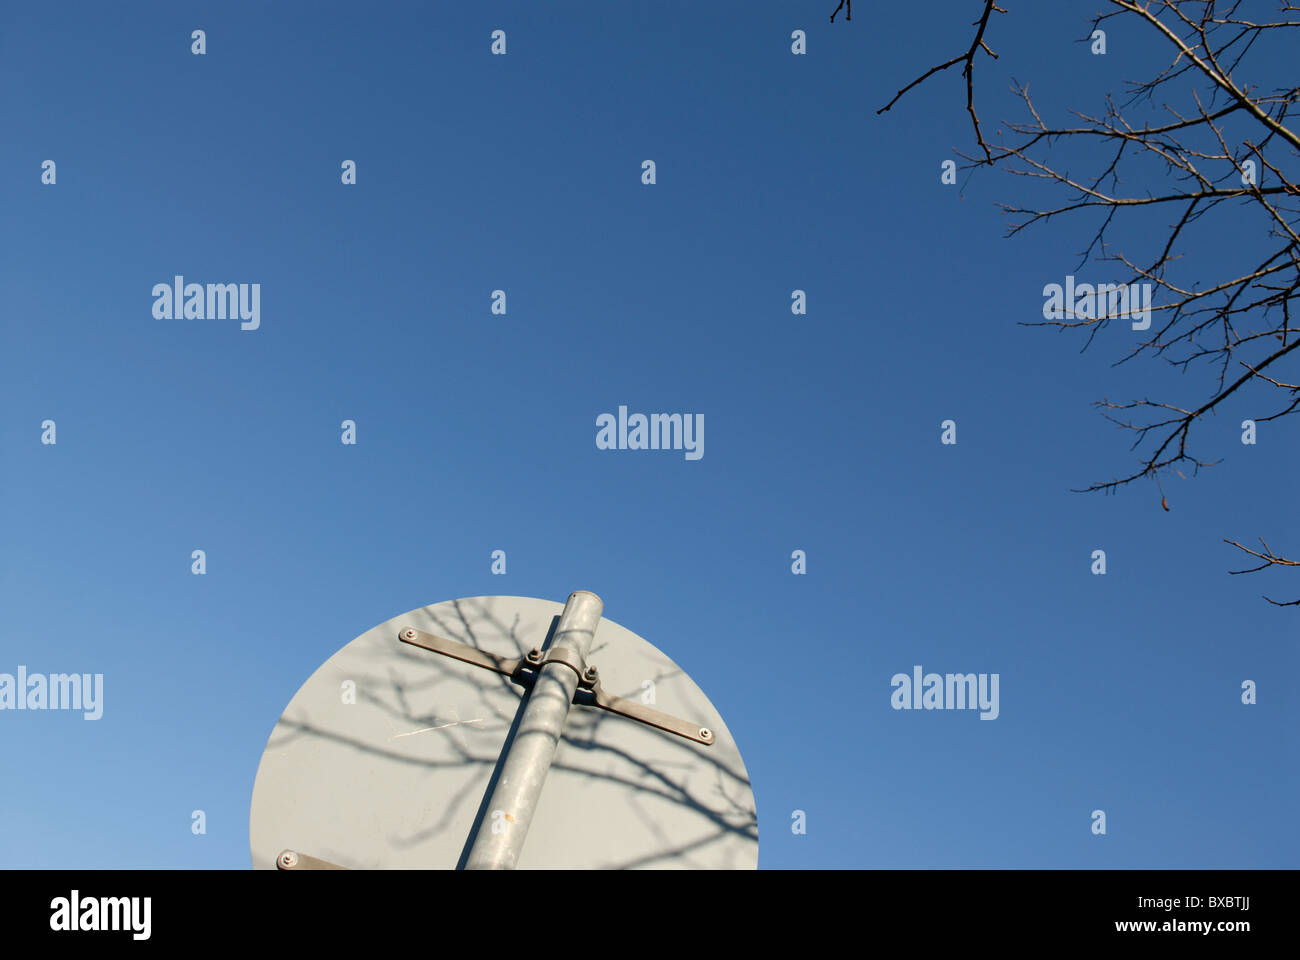 SIGN ABSTRACT - Stock Image